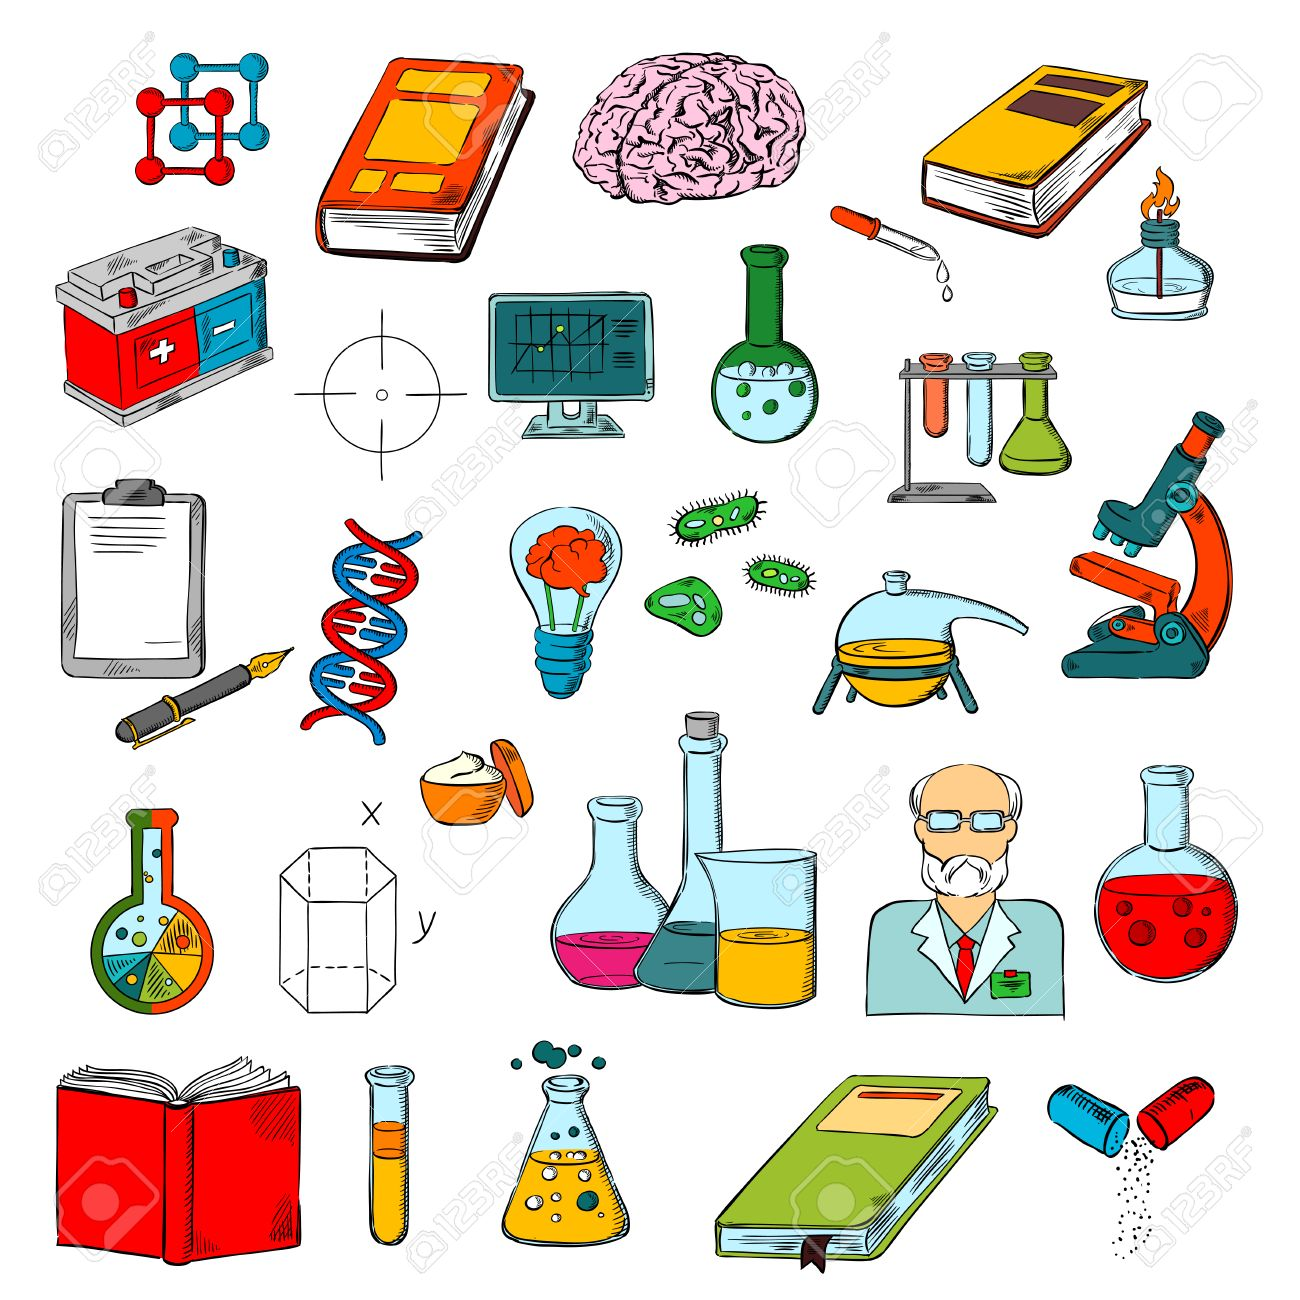 Symbols chemistry map maker mac physics chemistry and medicine science research symbols of 60305255 physics chemistry and medicine science research symbols of sketched books microscope buycottarizona